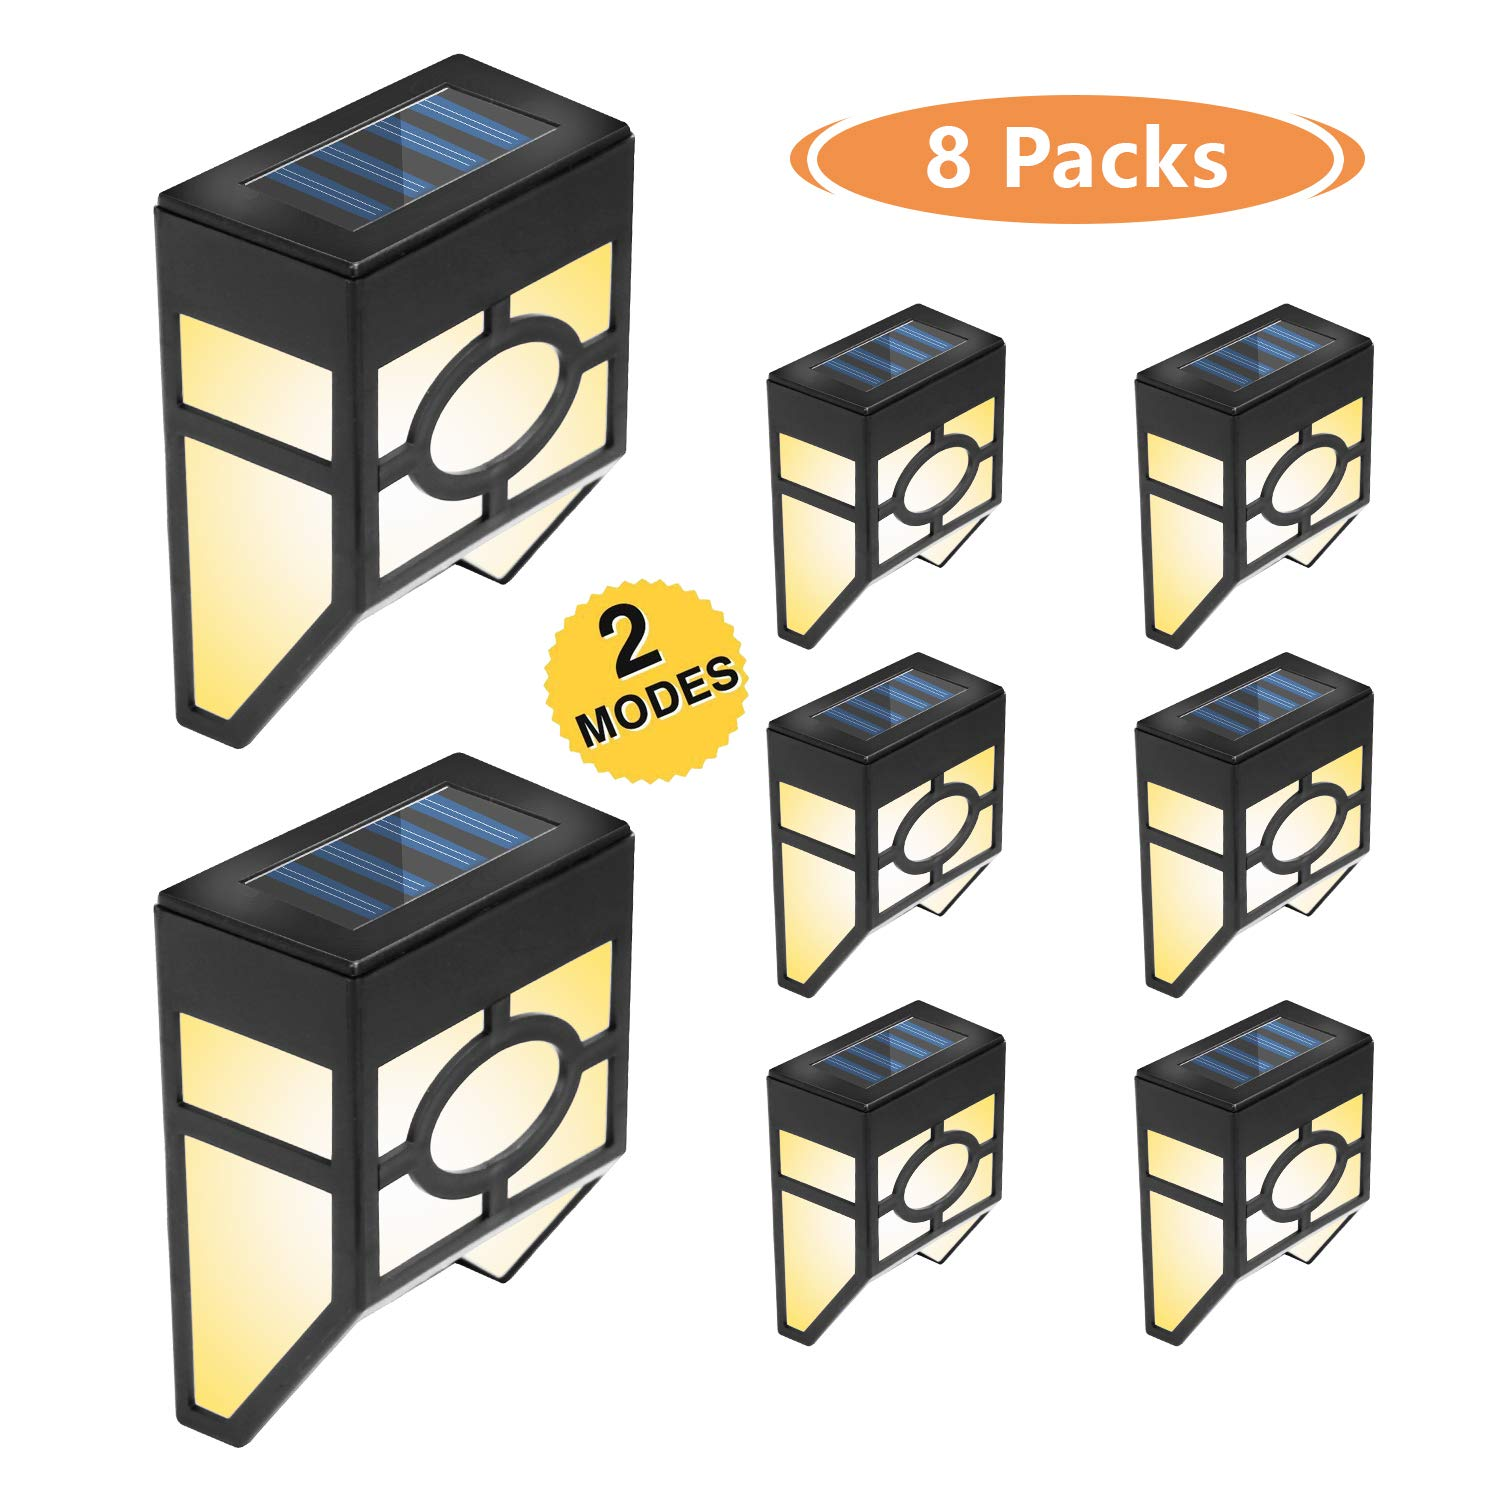 Otdair Solar Deck Lights, 2 Modes Night Lights Wall Mount Fence Post Lights LED Wall Light for Garden, Landscape, Decoration, Pathway, Patio, Fence, Deck, Yard, White/Color Changing, 8 Pack